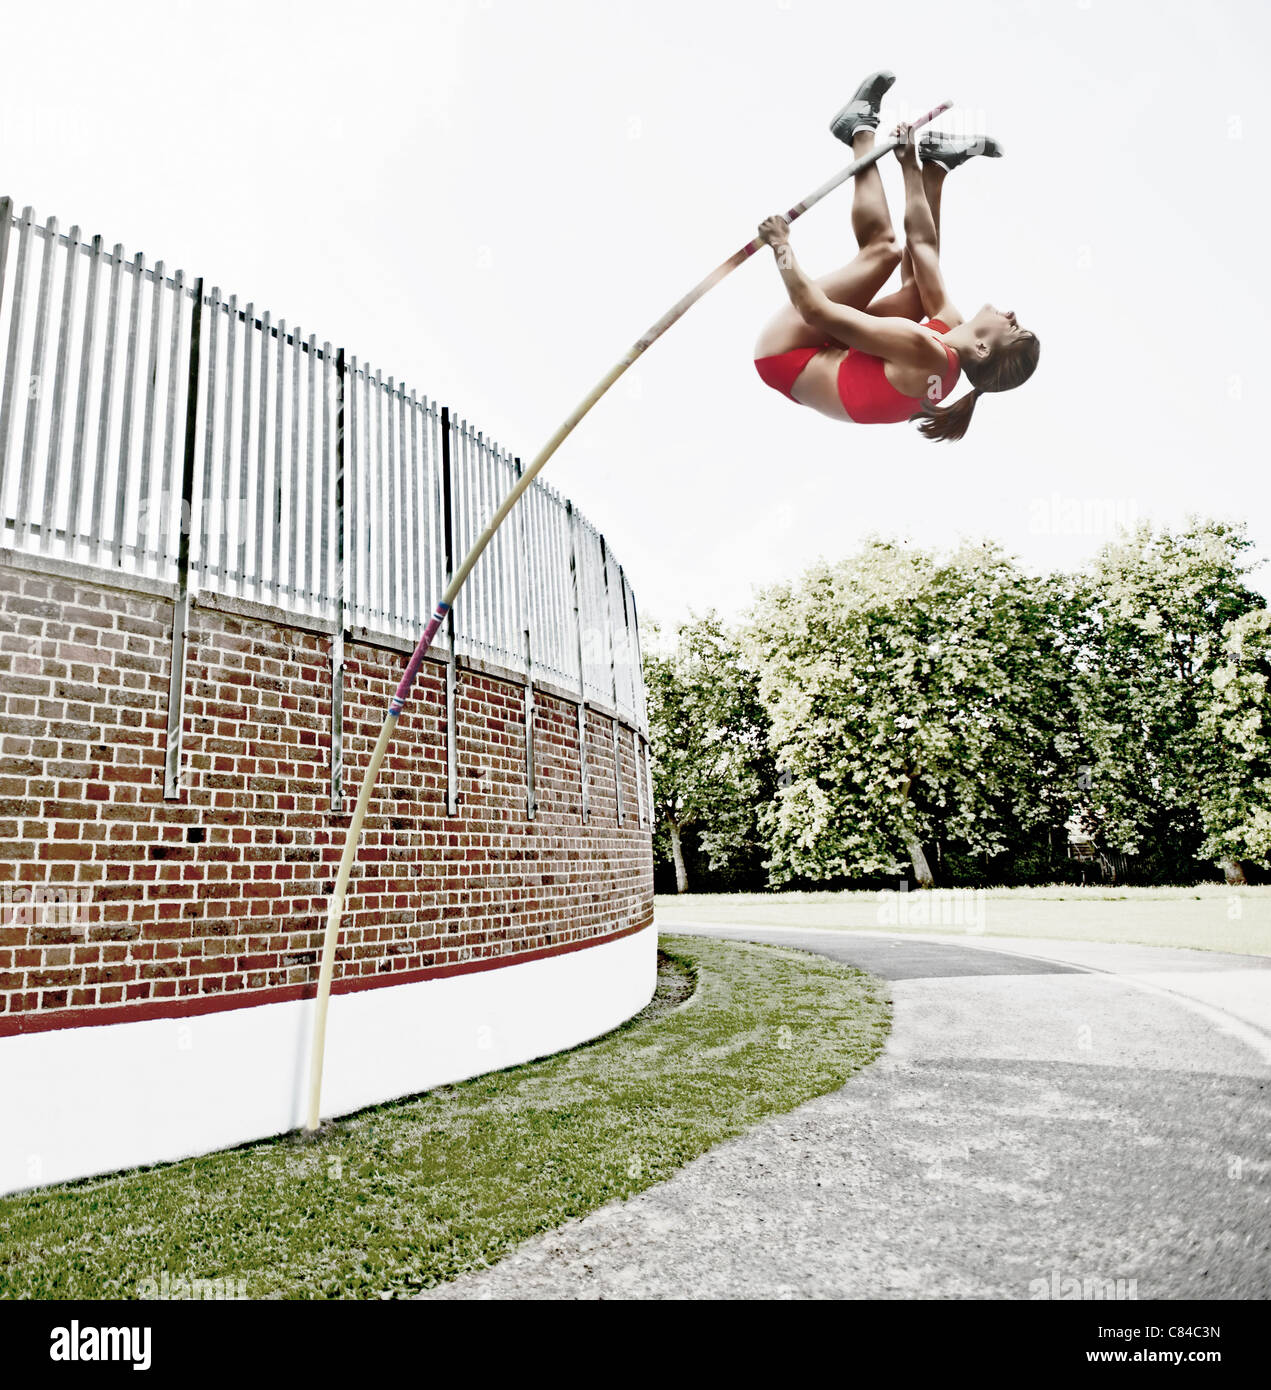 Athlete vaulting over brick wall - Stock Image